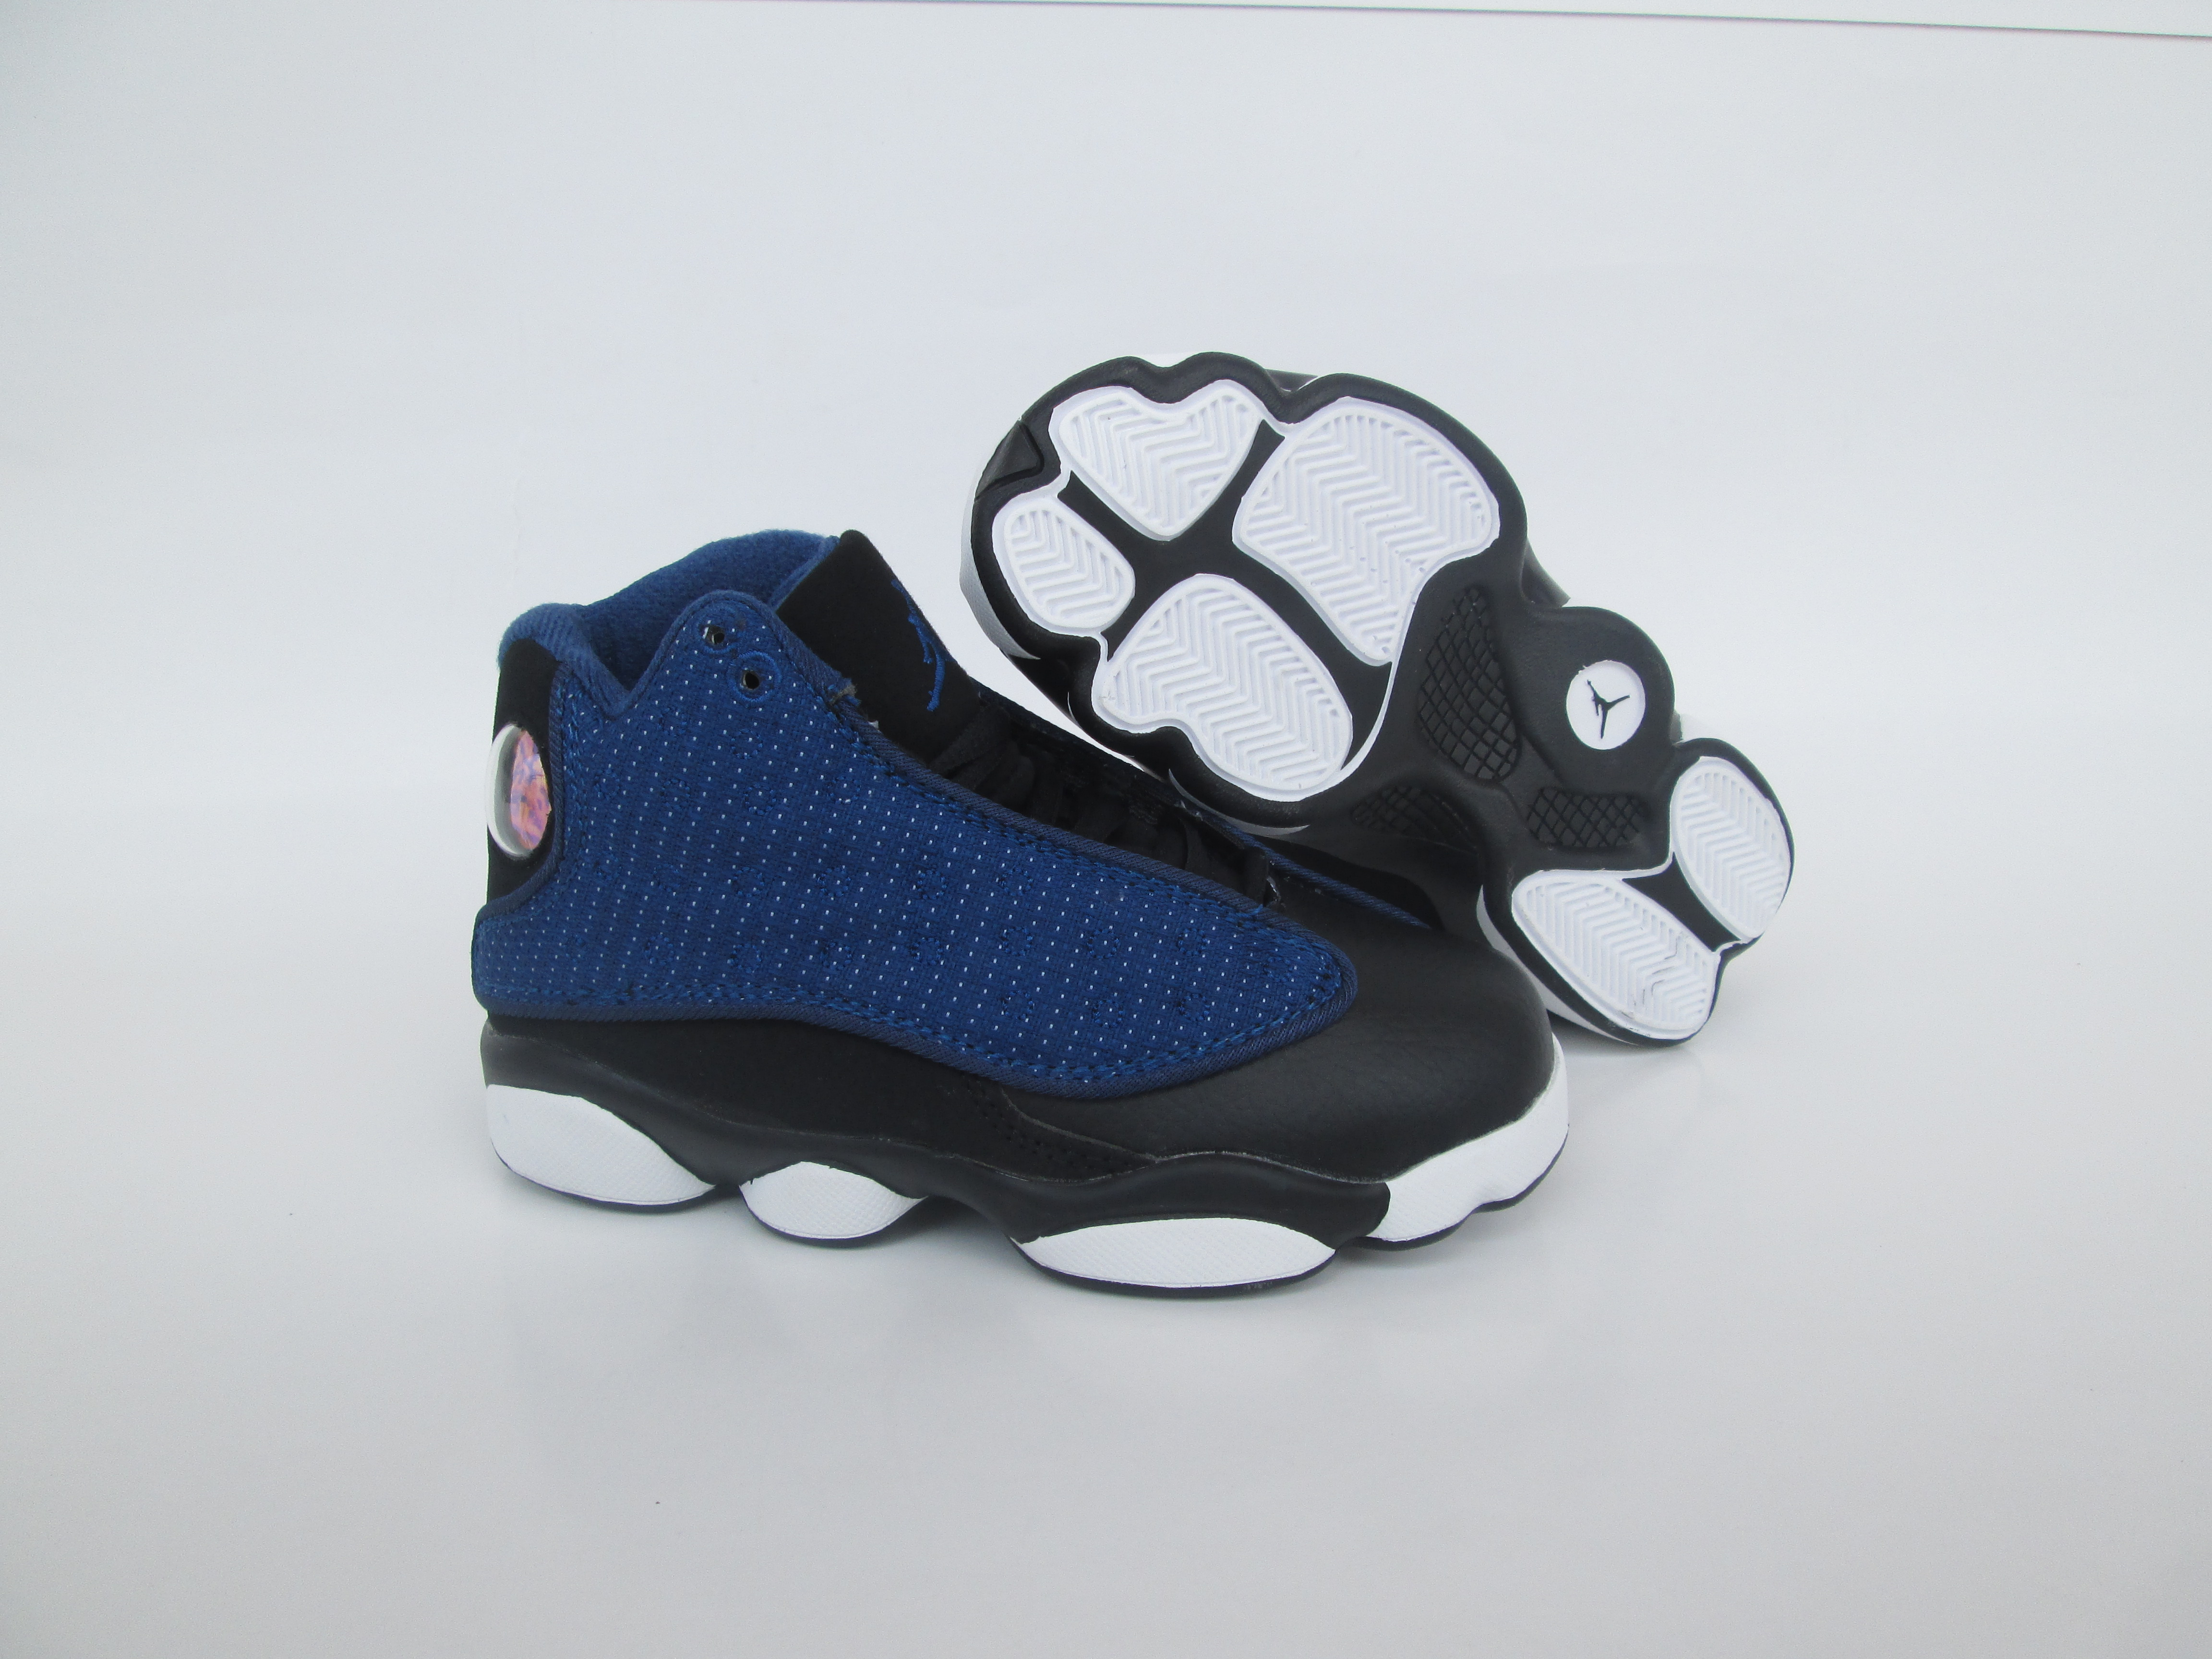 New Kids 2017 Jordan 13 Deep Blue Black Shoes